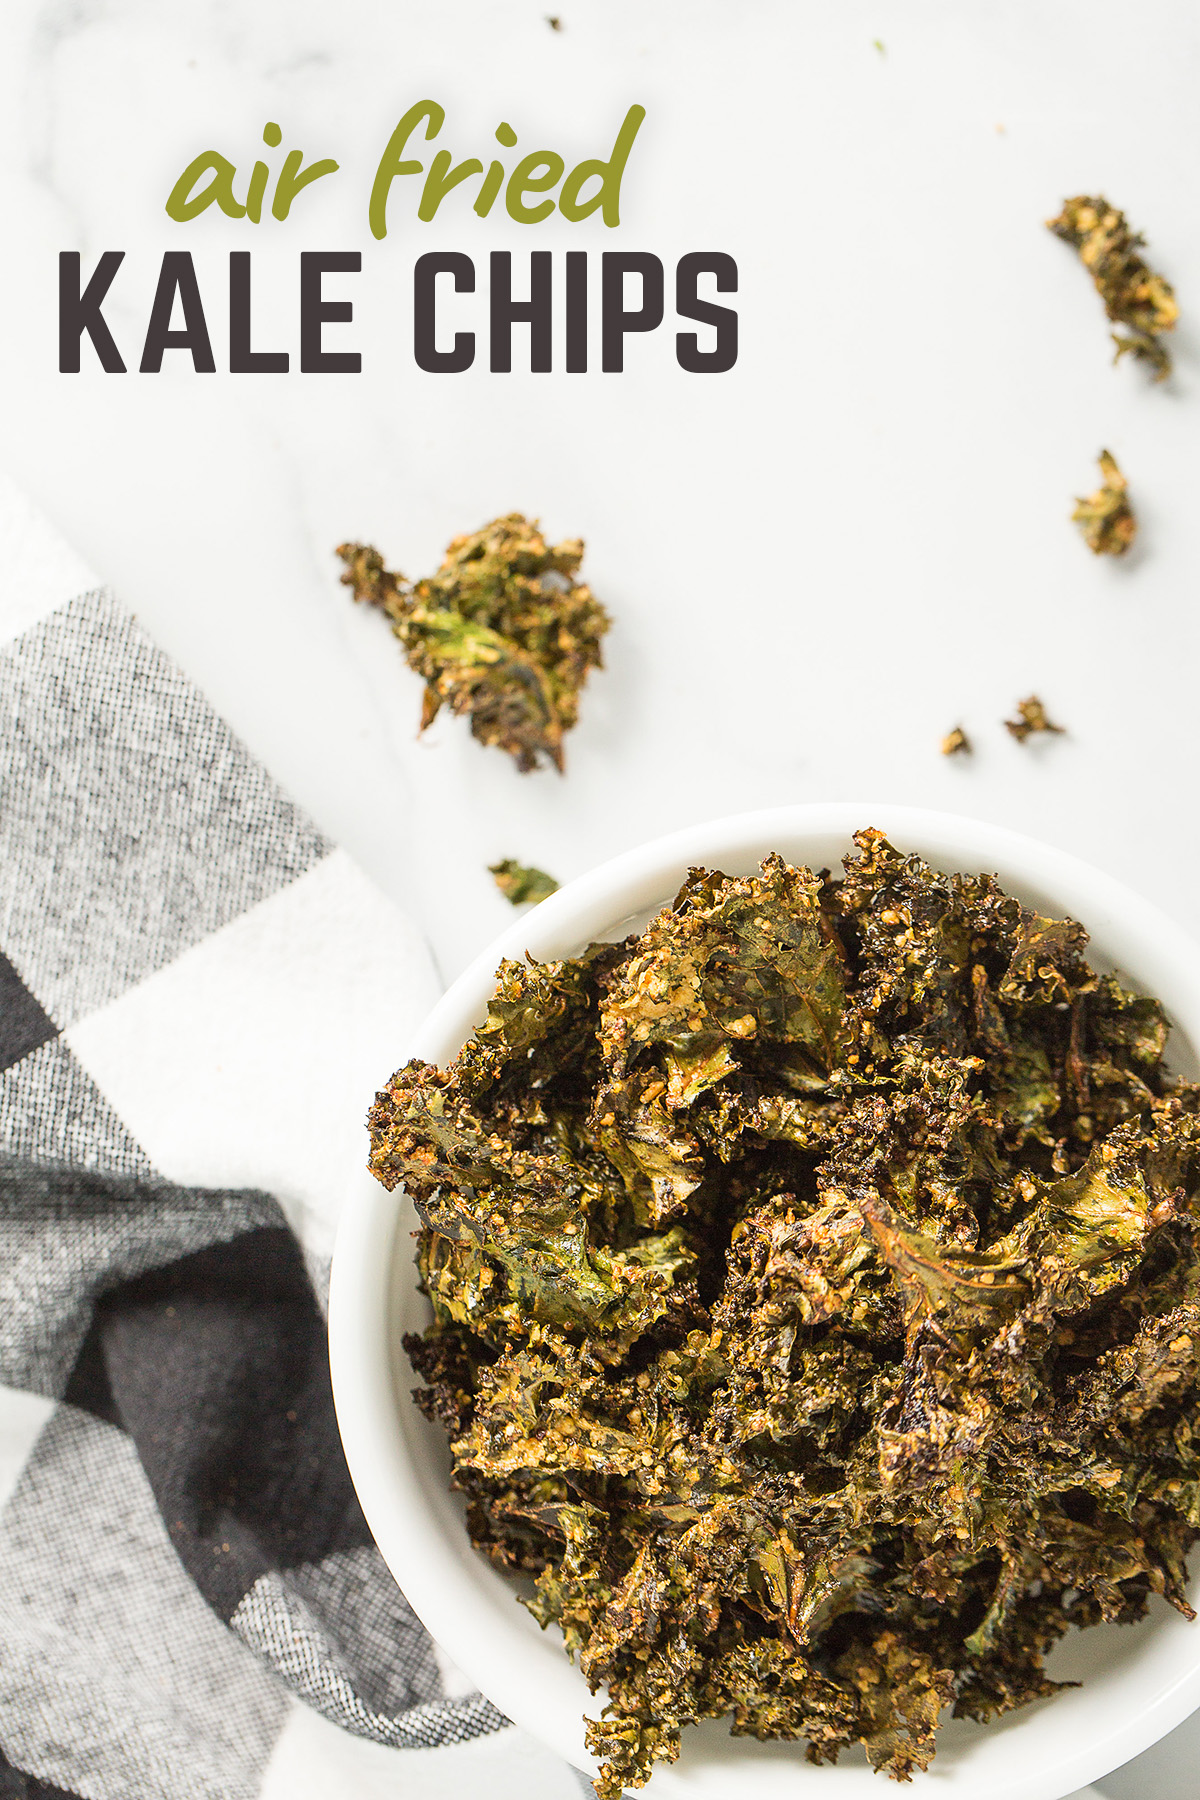 Crispy kale chips are a perfect healthy snack option for your family! #lowcarb #recipes #airfried